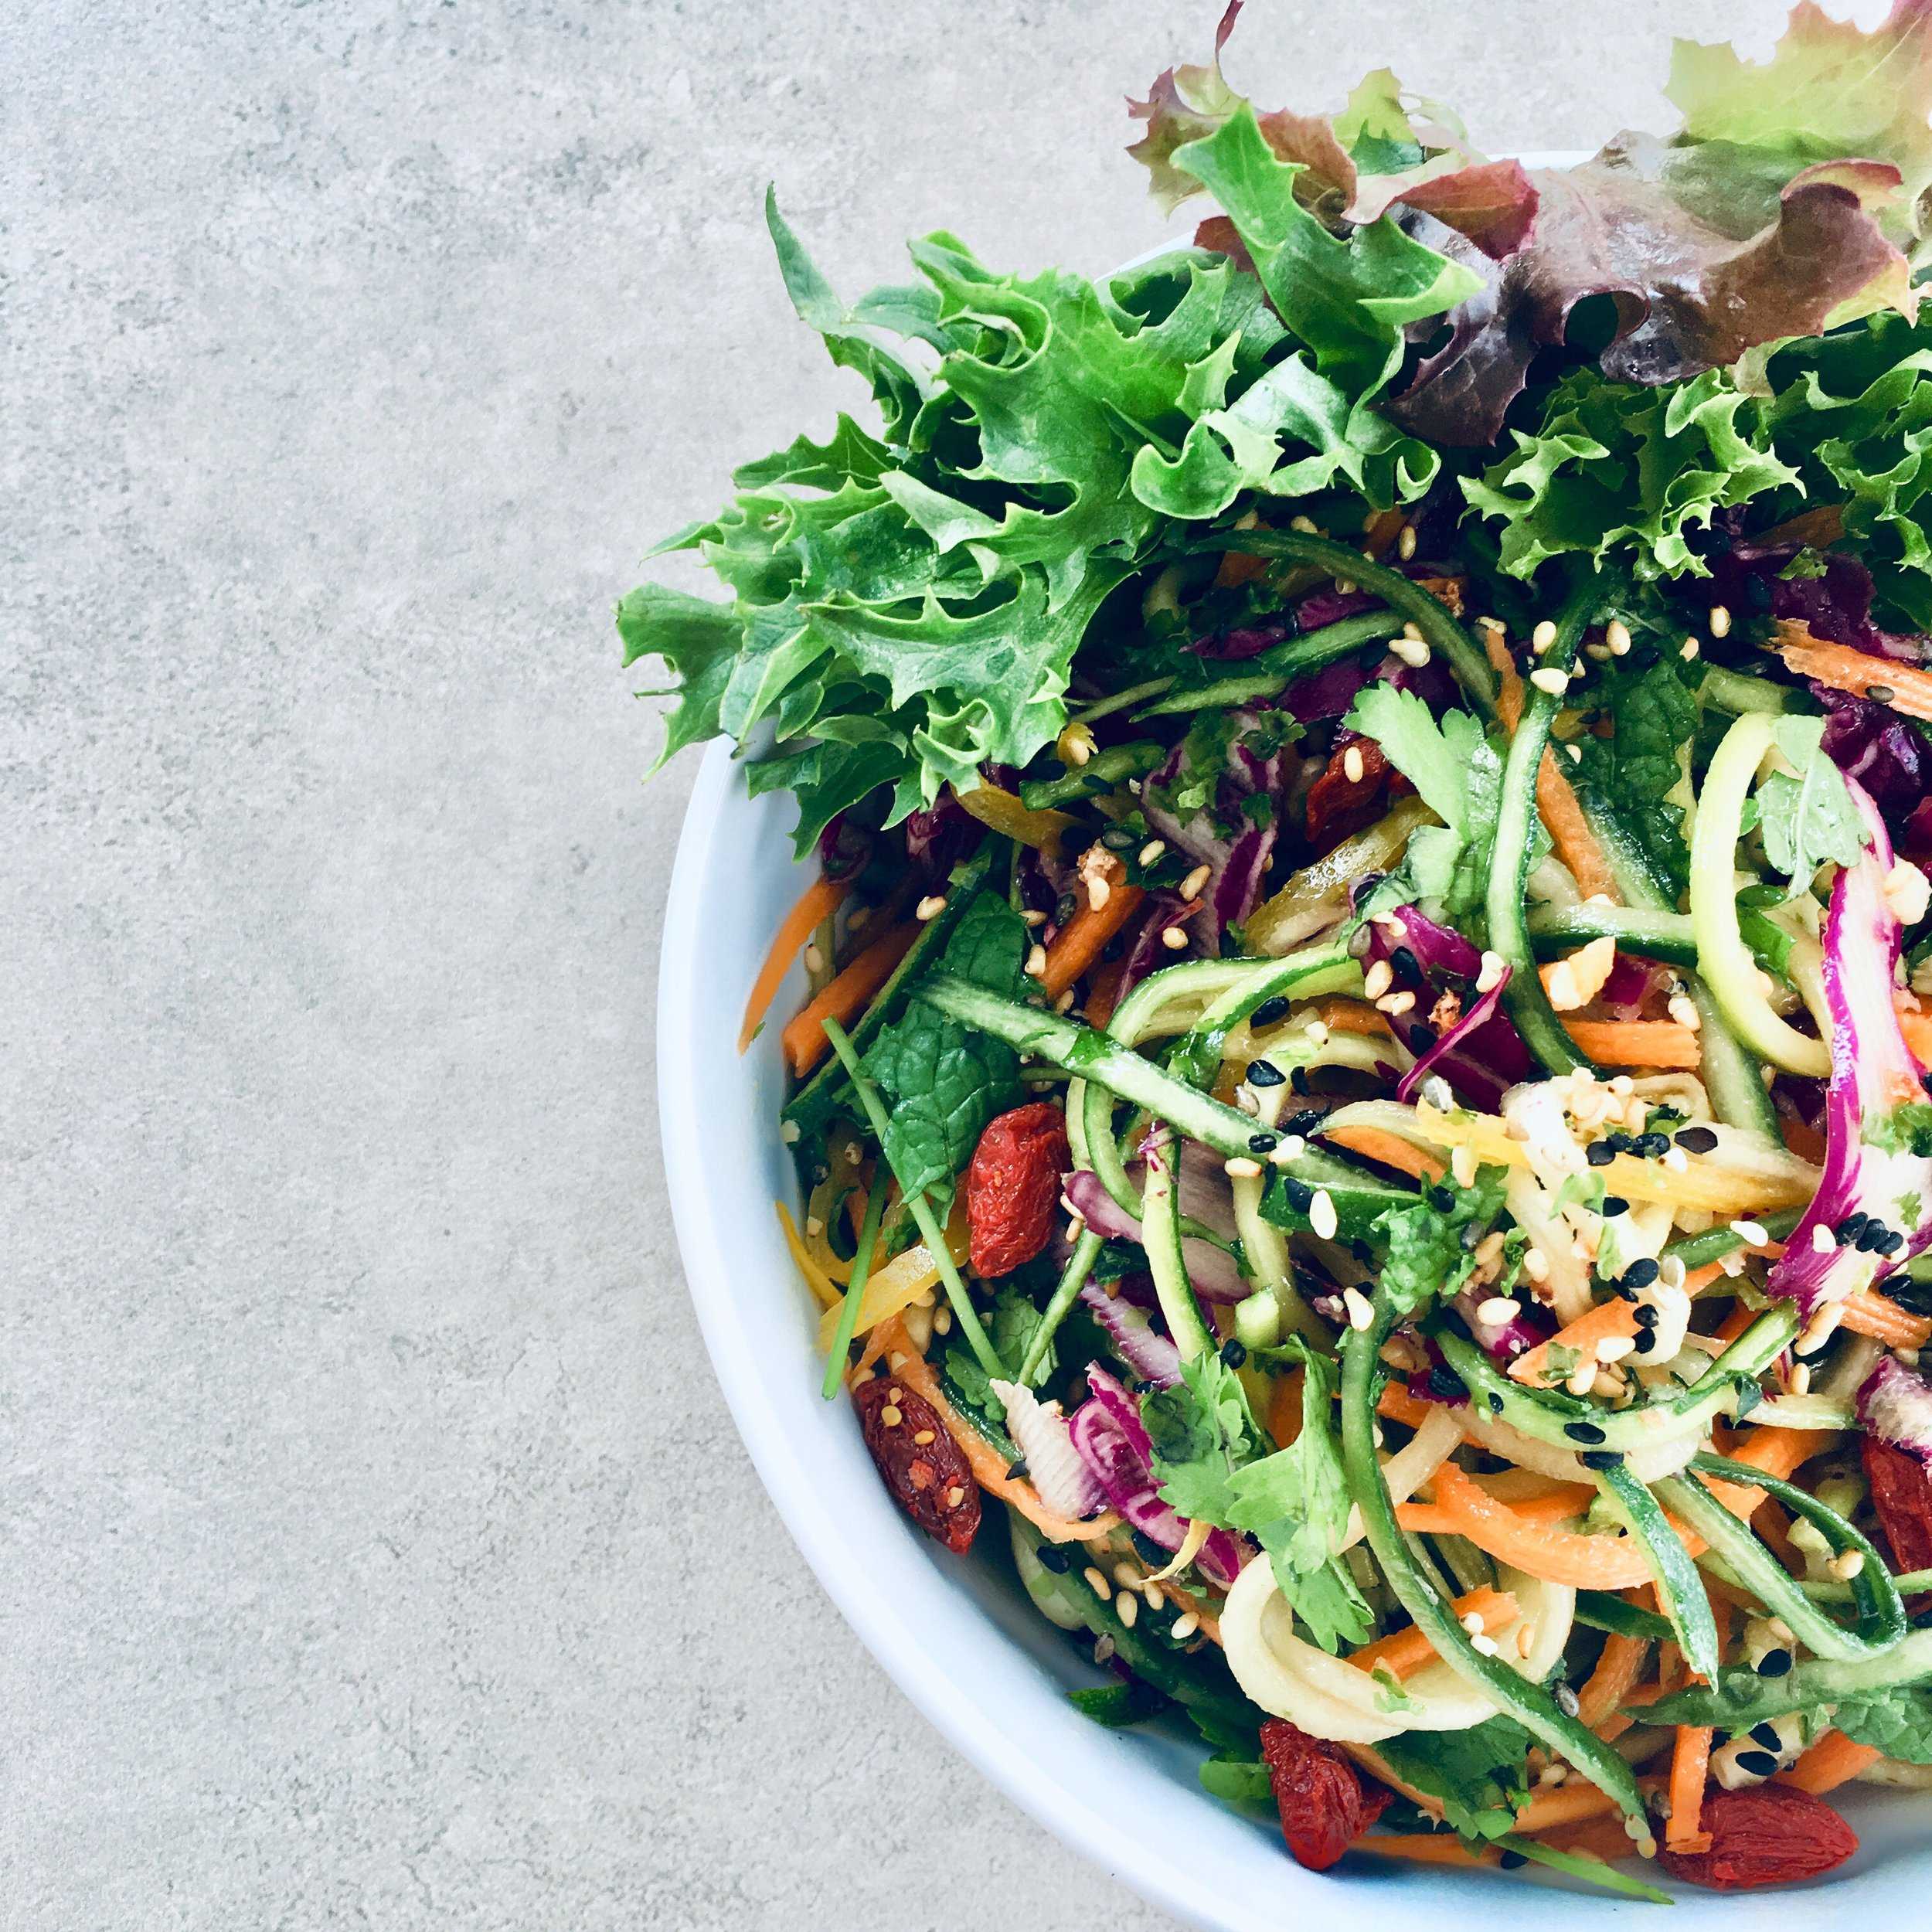 Tangled veggies dressed in a light miso sesame dressing #vegan